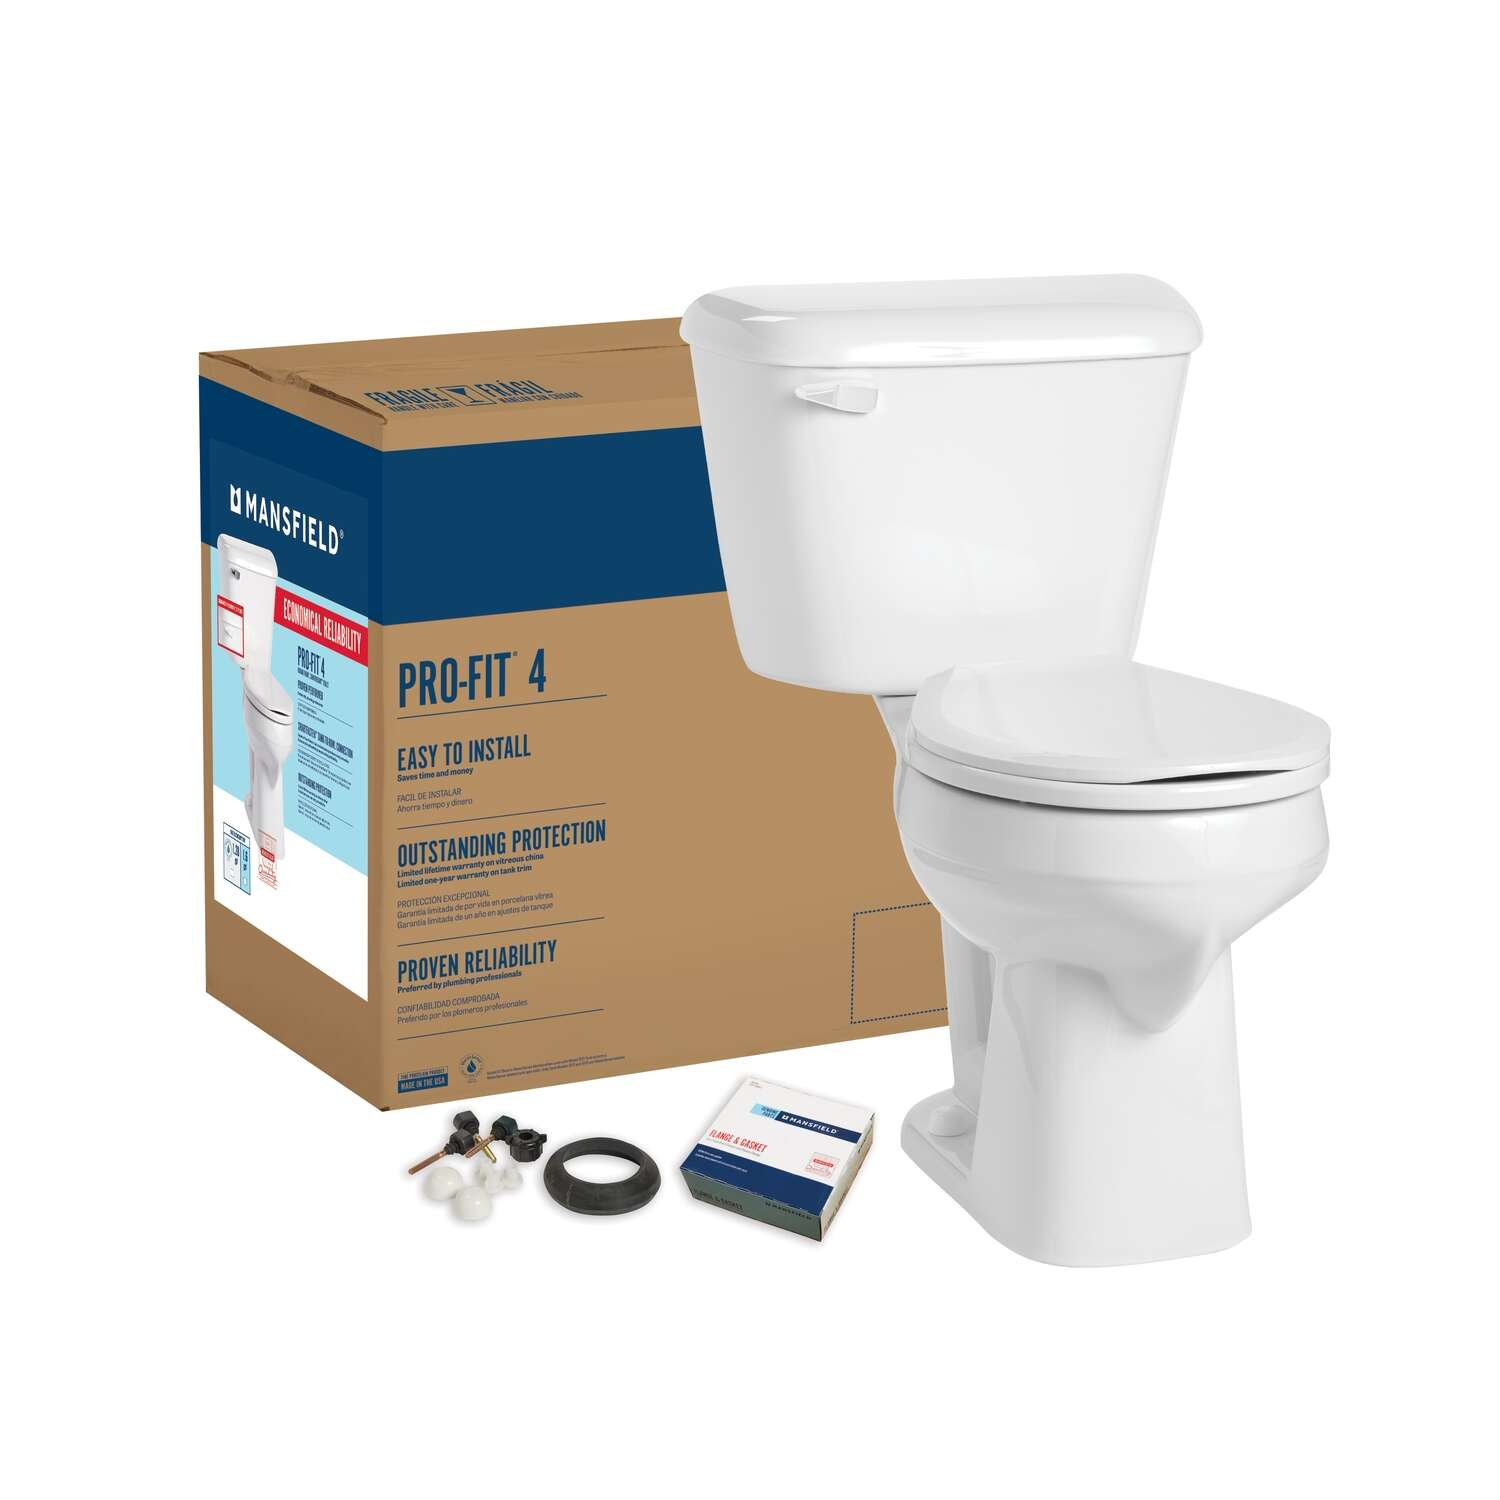 Mansfield  Pro-Fit 4  ADA Compliant 1.28 gal. White  Round  Complete Toilet